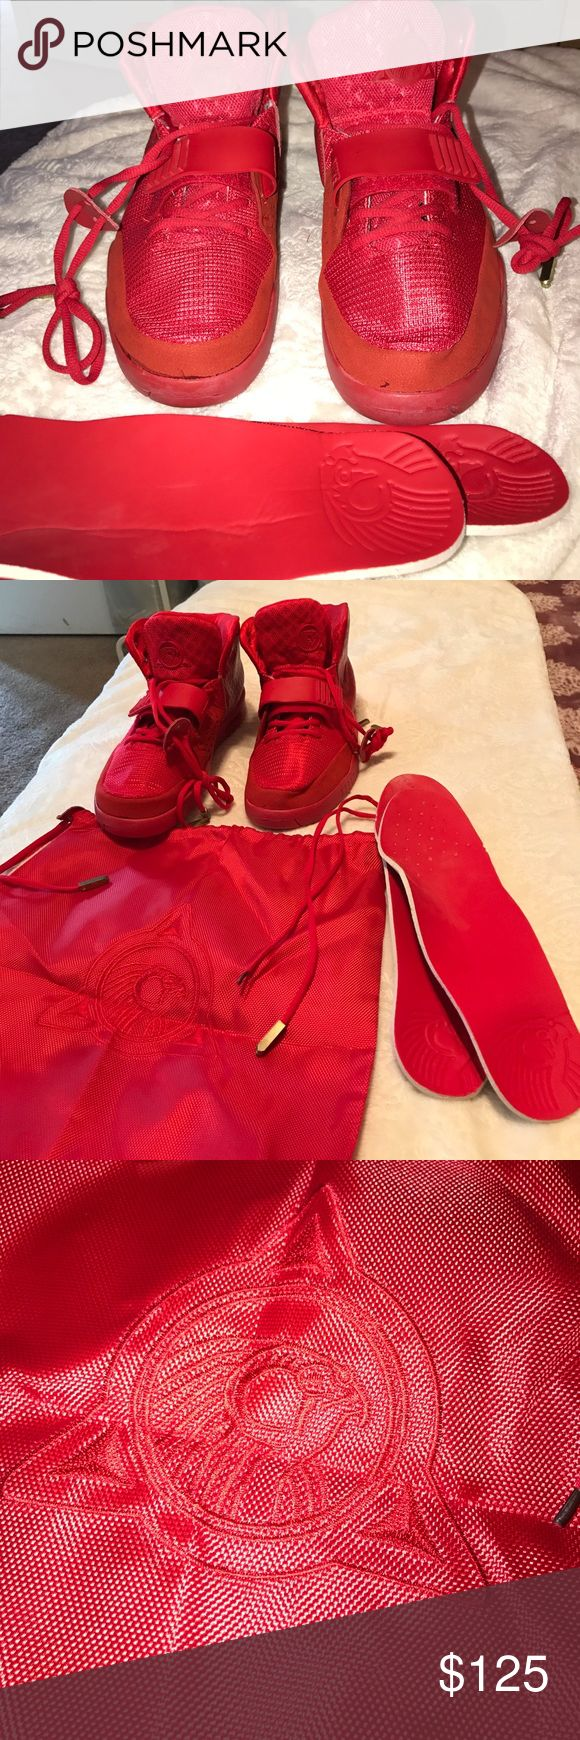 Nike air yeezy 2 red octobers kanye west python New Nike air yeezy 2 by Kanye west red octobers, never used, includes dust bag, not authentic shoes. Nike Shoes Athletic Shoes